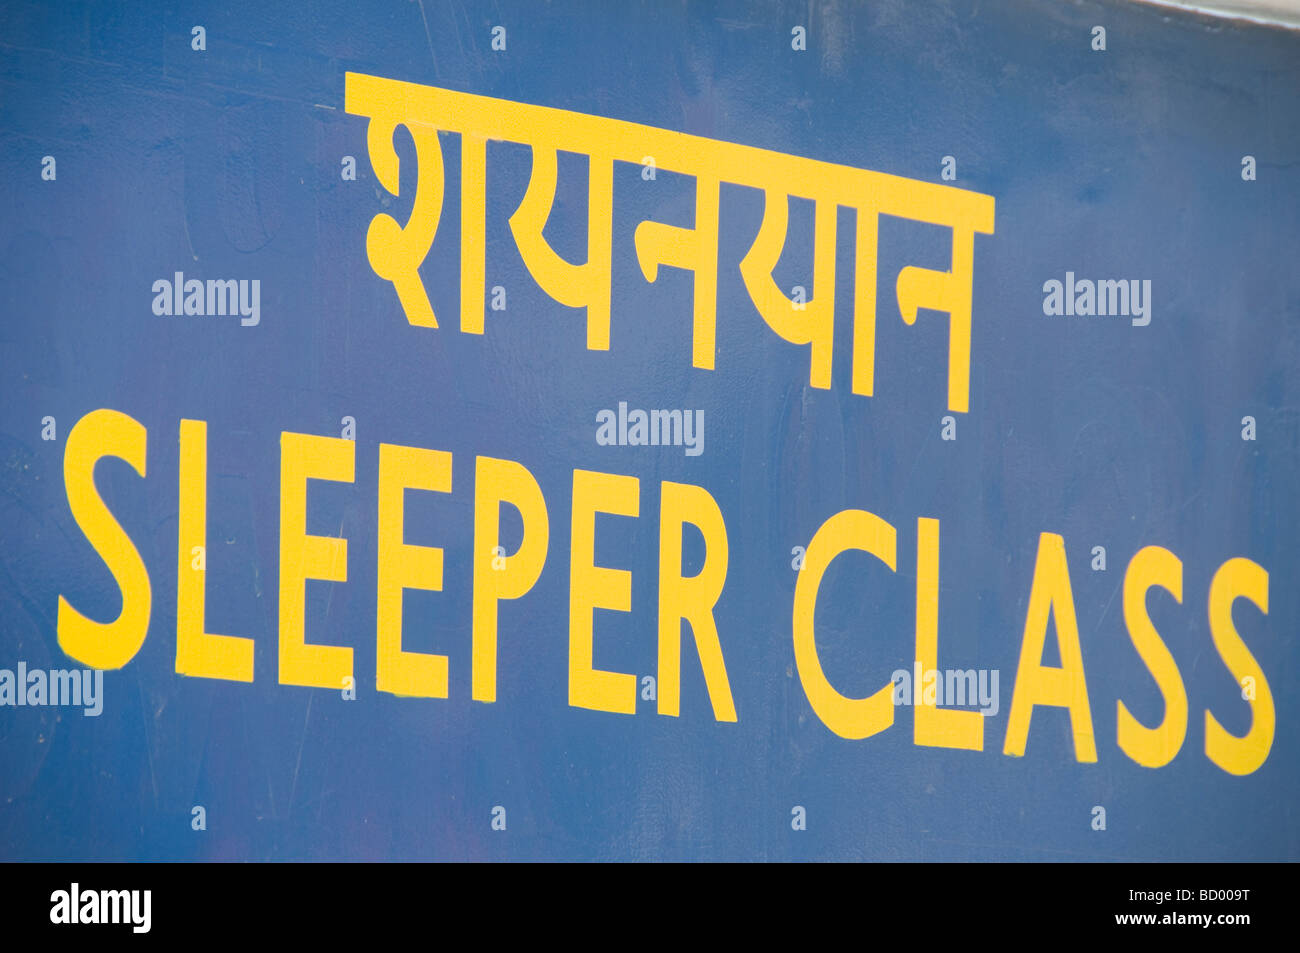 Sleeper Class in India - Stock Image